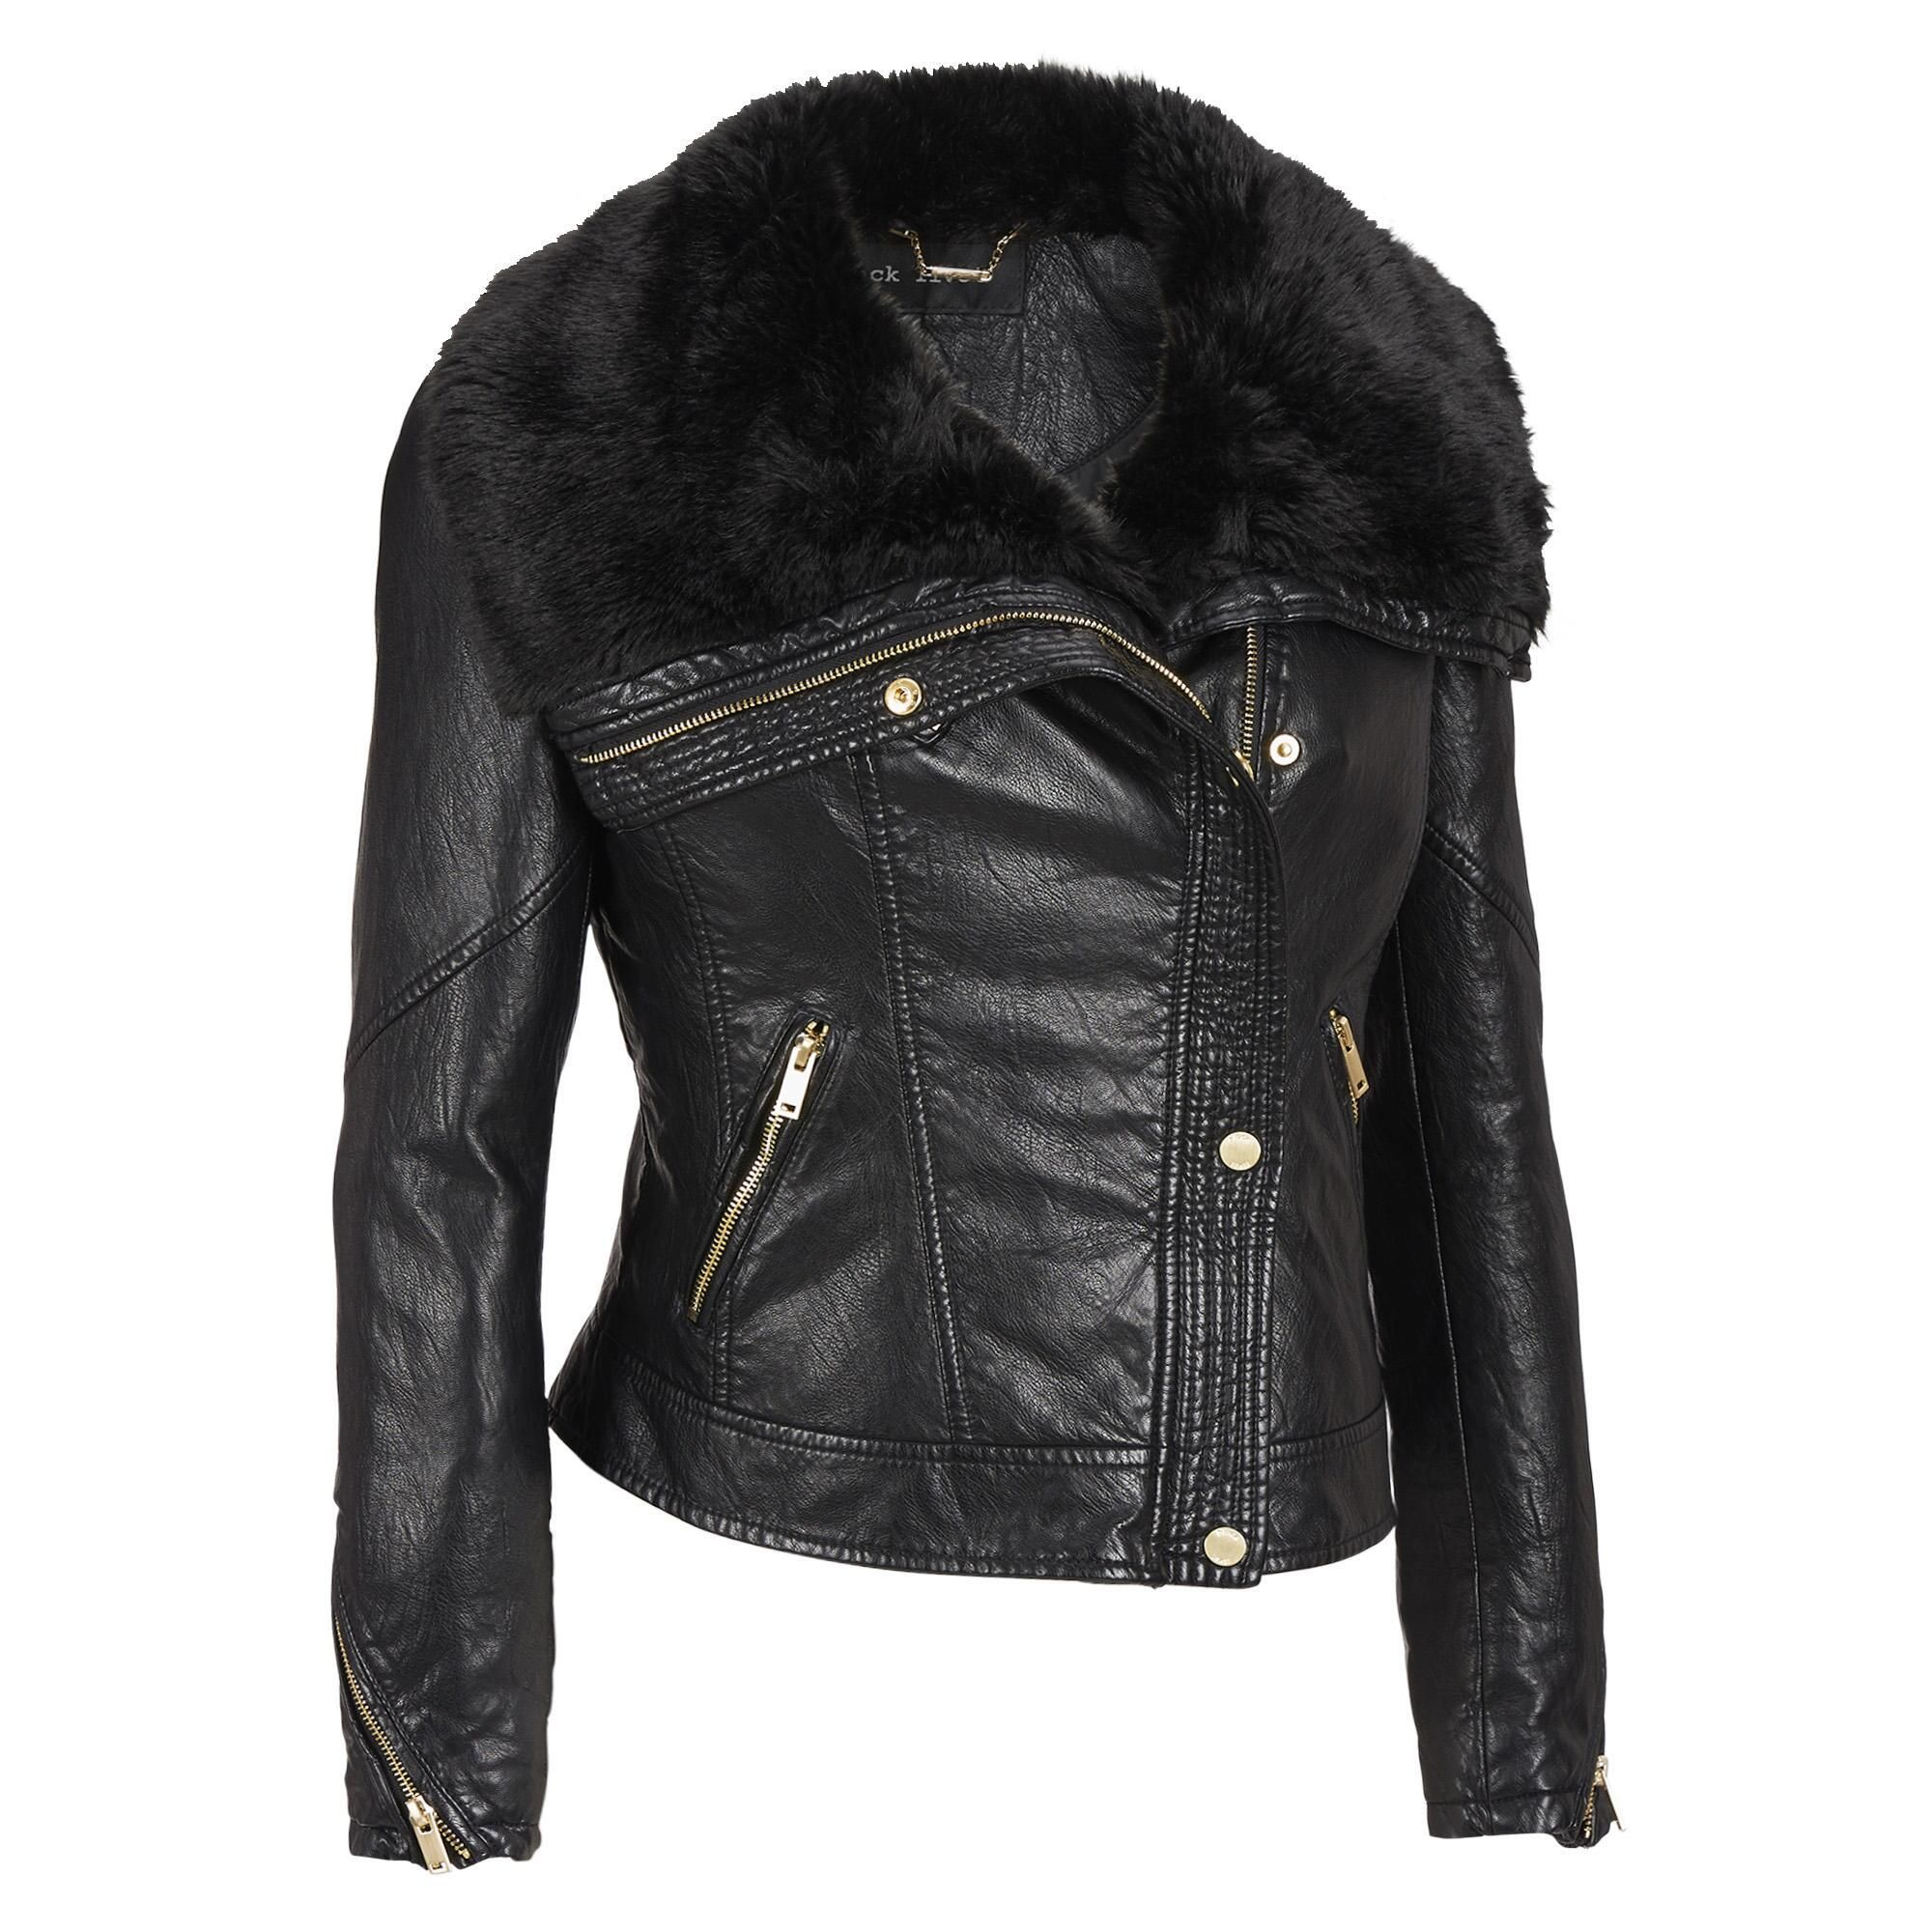 Black Rivet FauxLeather Asymmetric Zip Jacket w/FauxMink